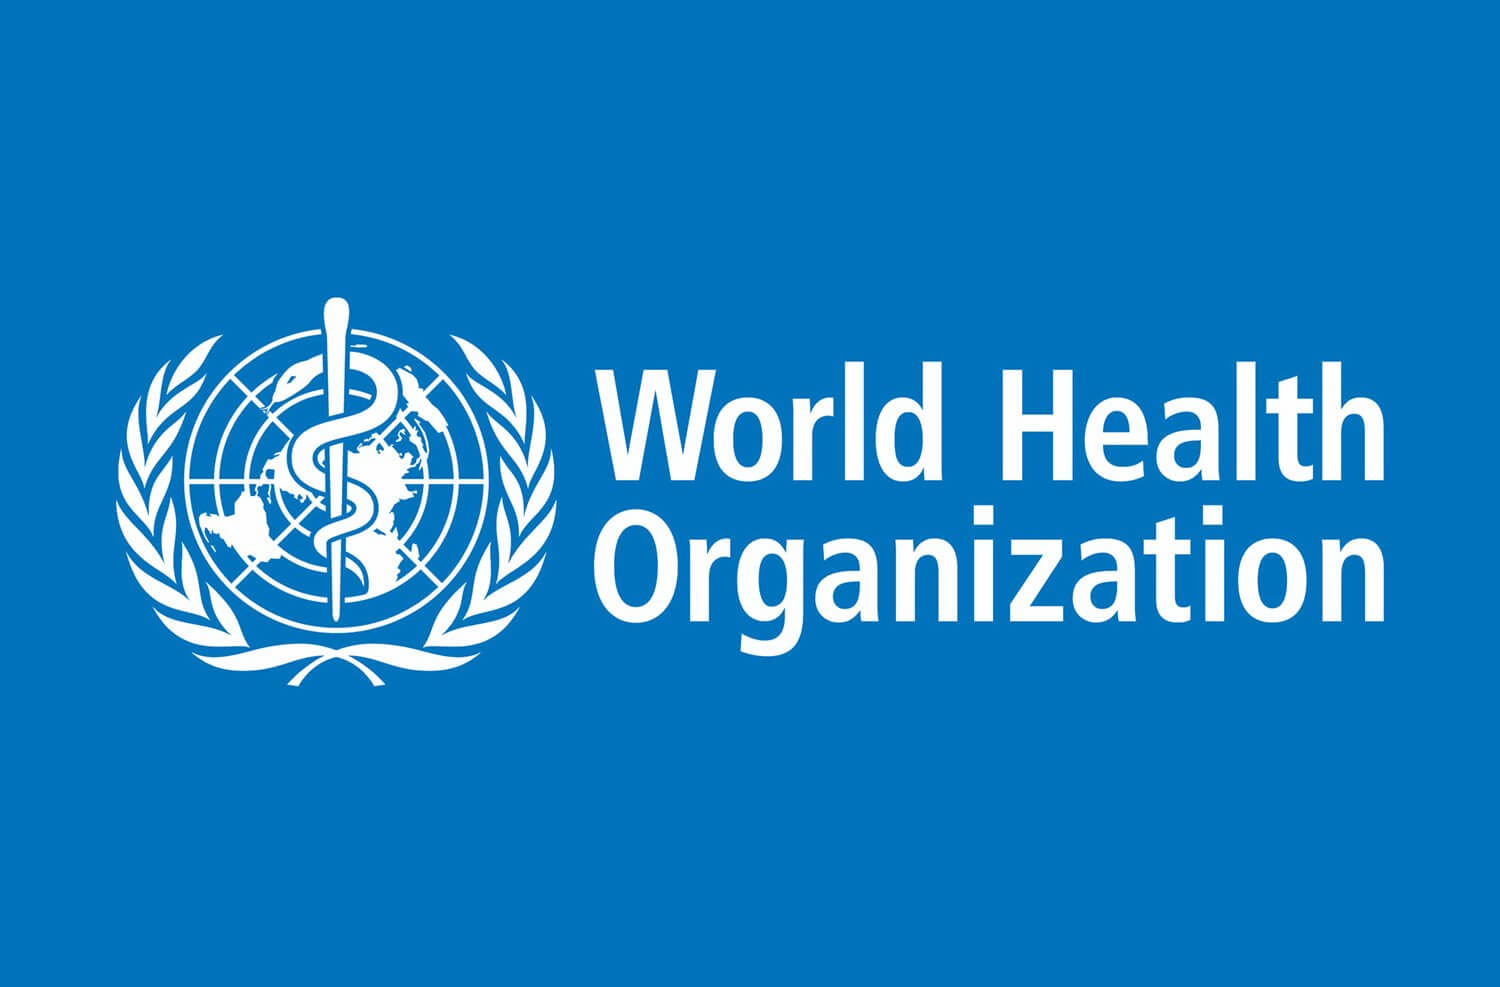 As Some European Nations Begin To See Their Covid 19 Outbreaks Let Up, The World Health Organisation (who) Warned Governments On Wednesday Not To Lift Their Clampdown On Public Life Too Soon. Who'